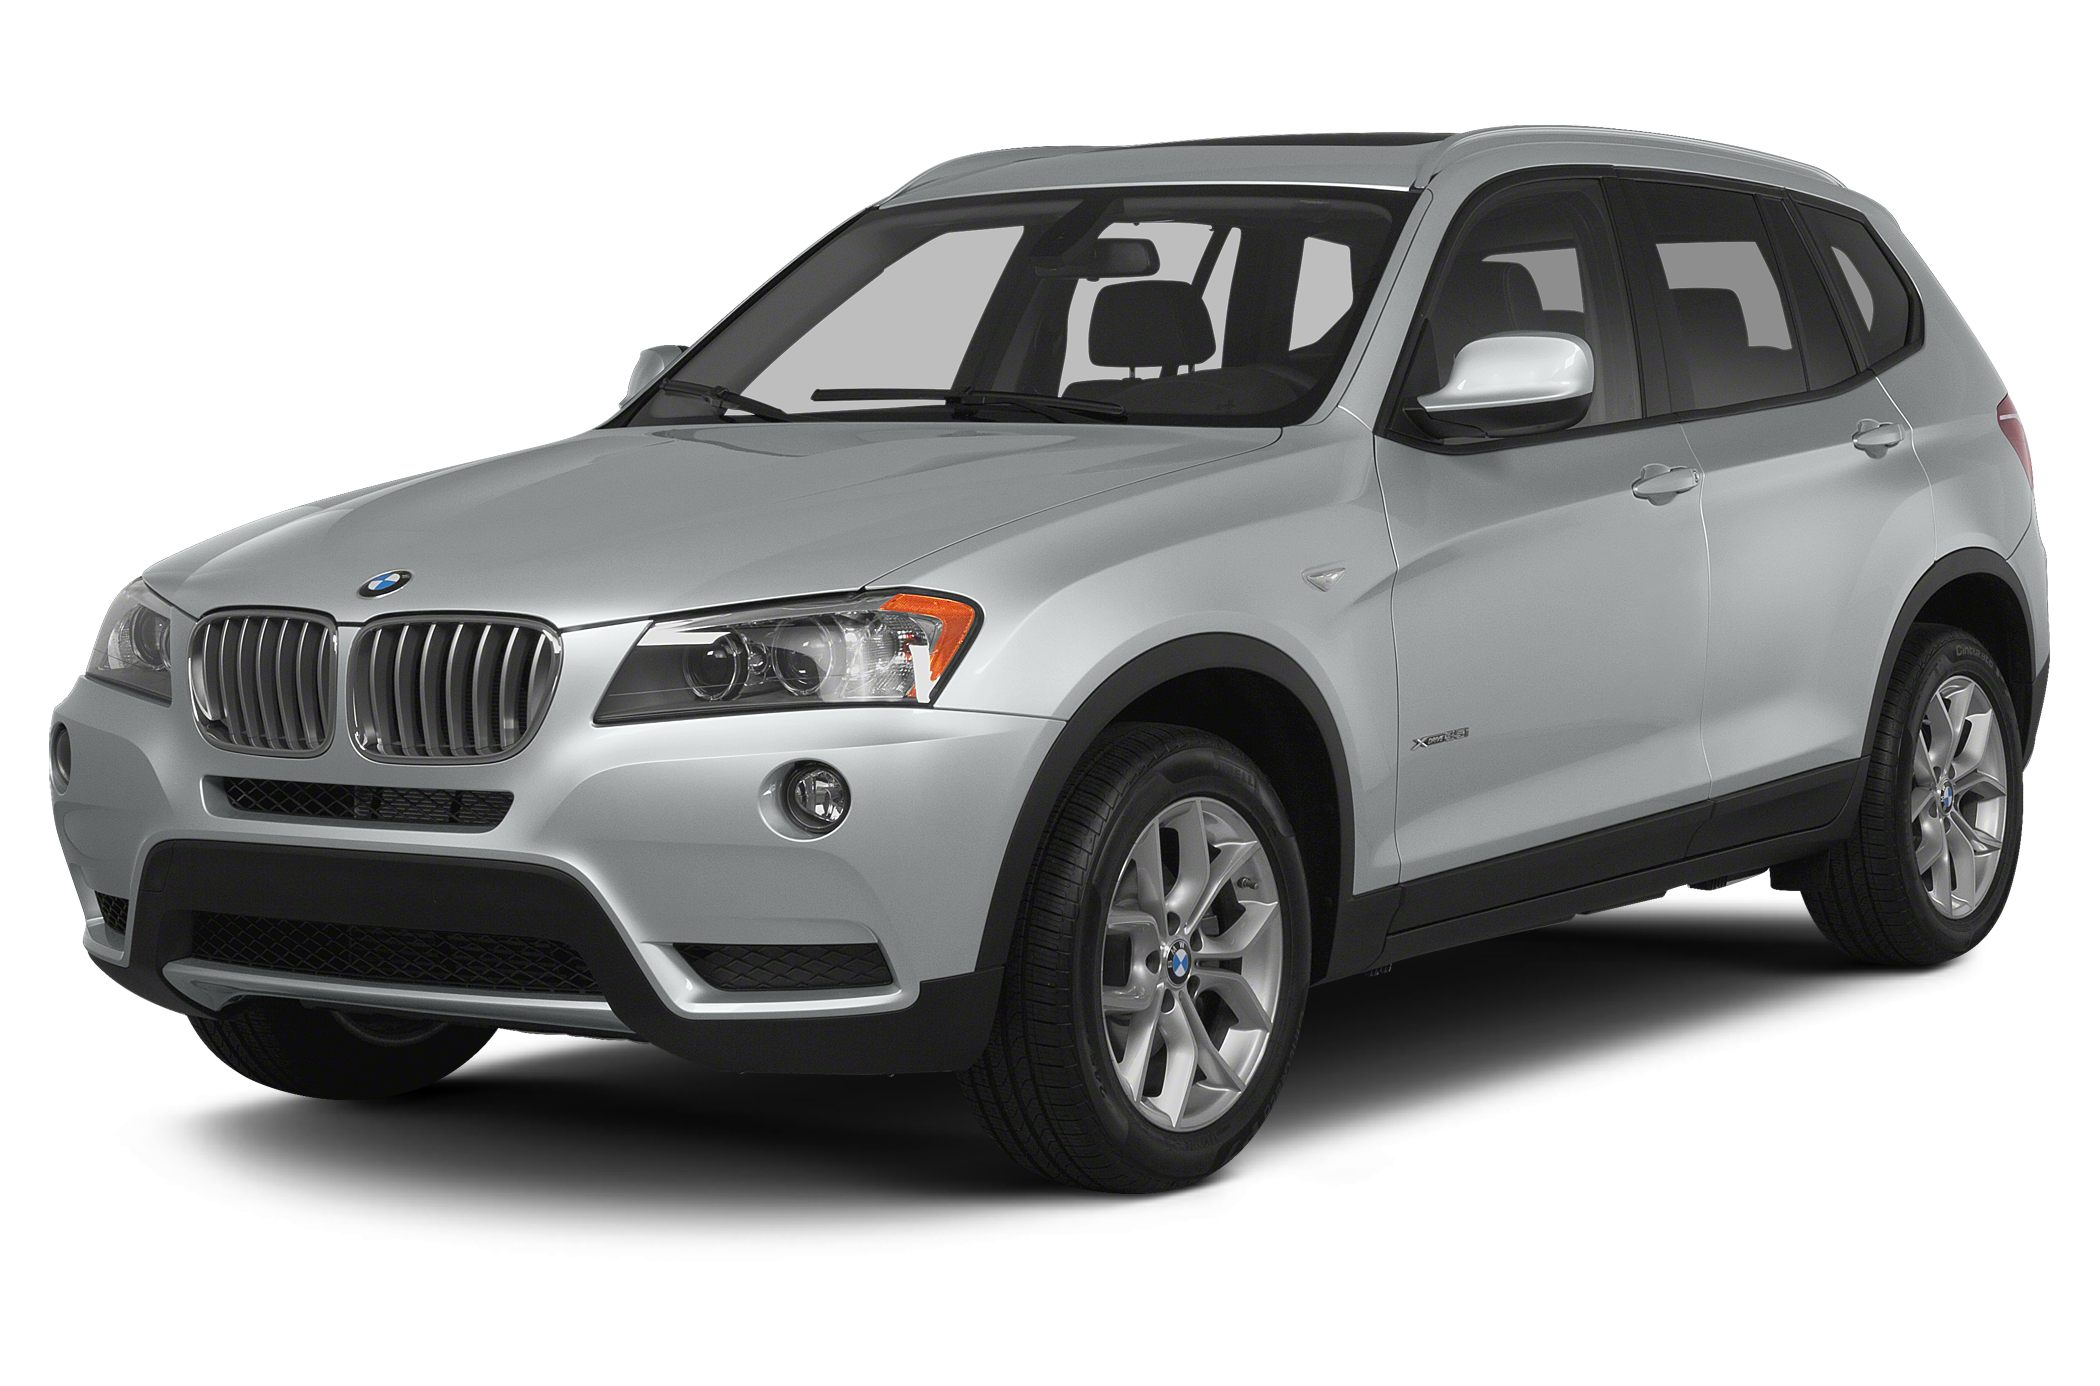 2014 BMW X3 XDrive28i SUV for sale in Santa Fe for $43,875 with 0 miles.